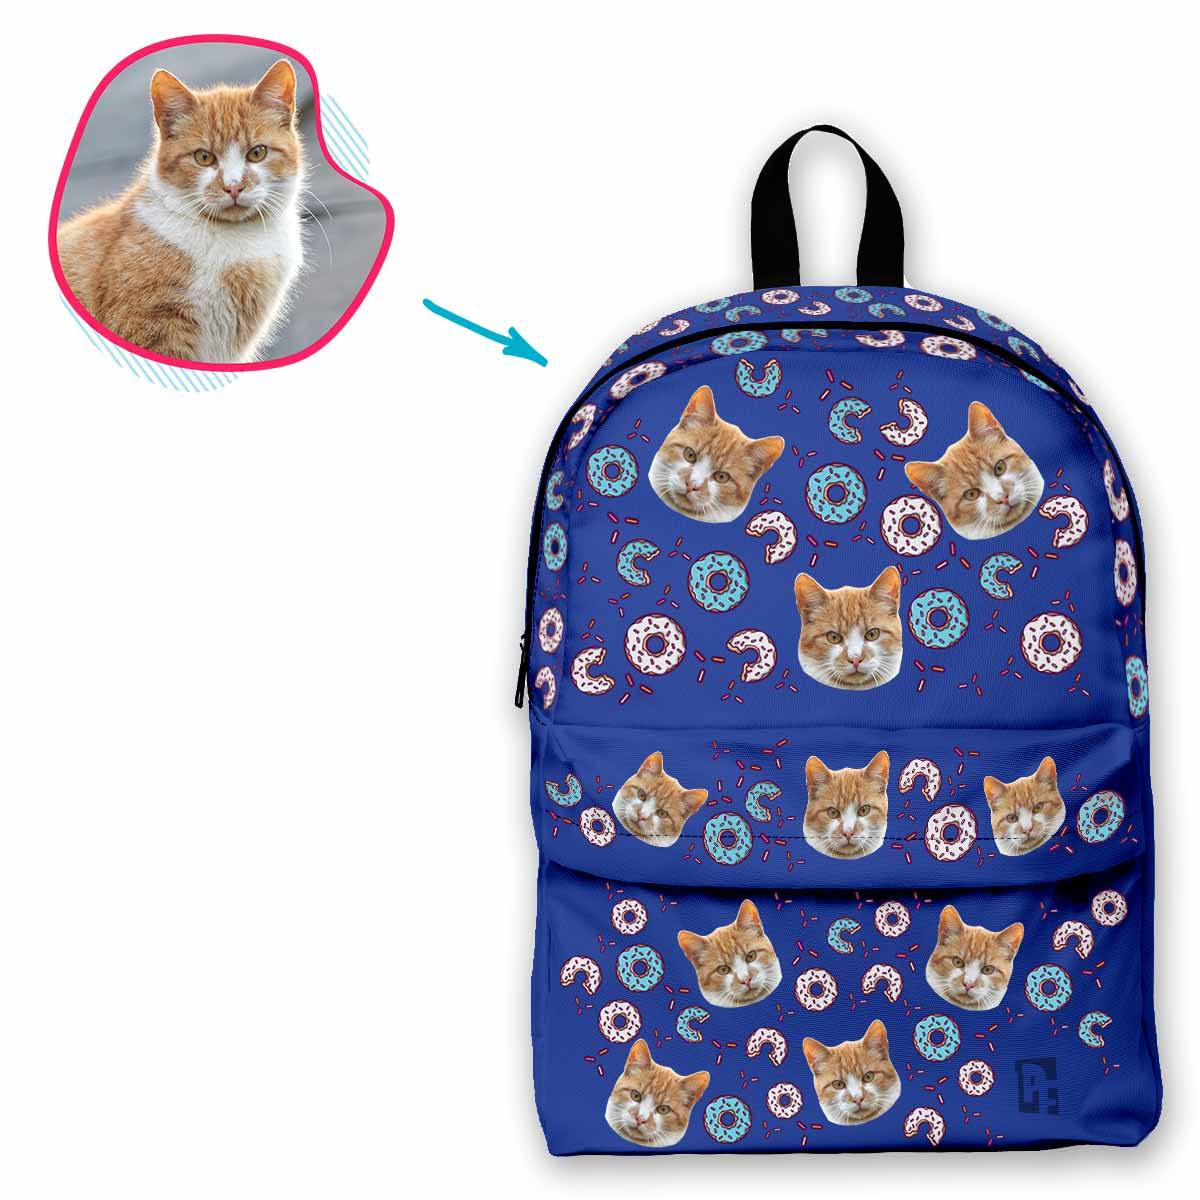 darkblue Donuts classic backpack personalized with photo of face printed on it